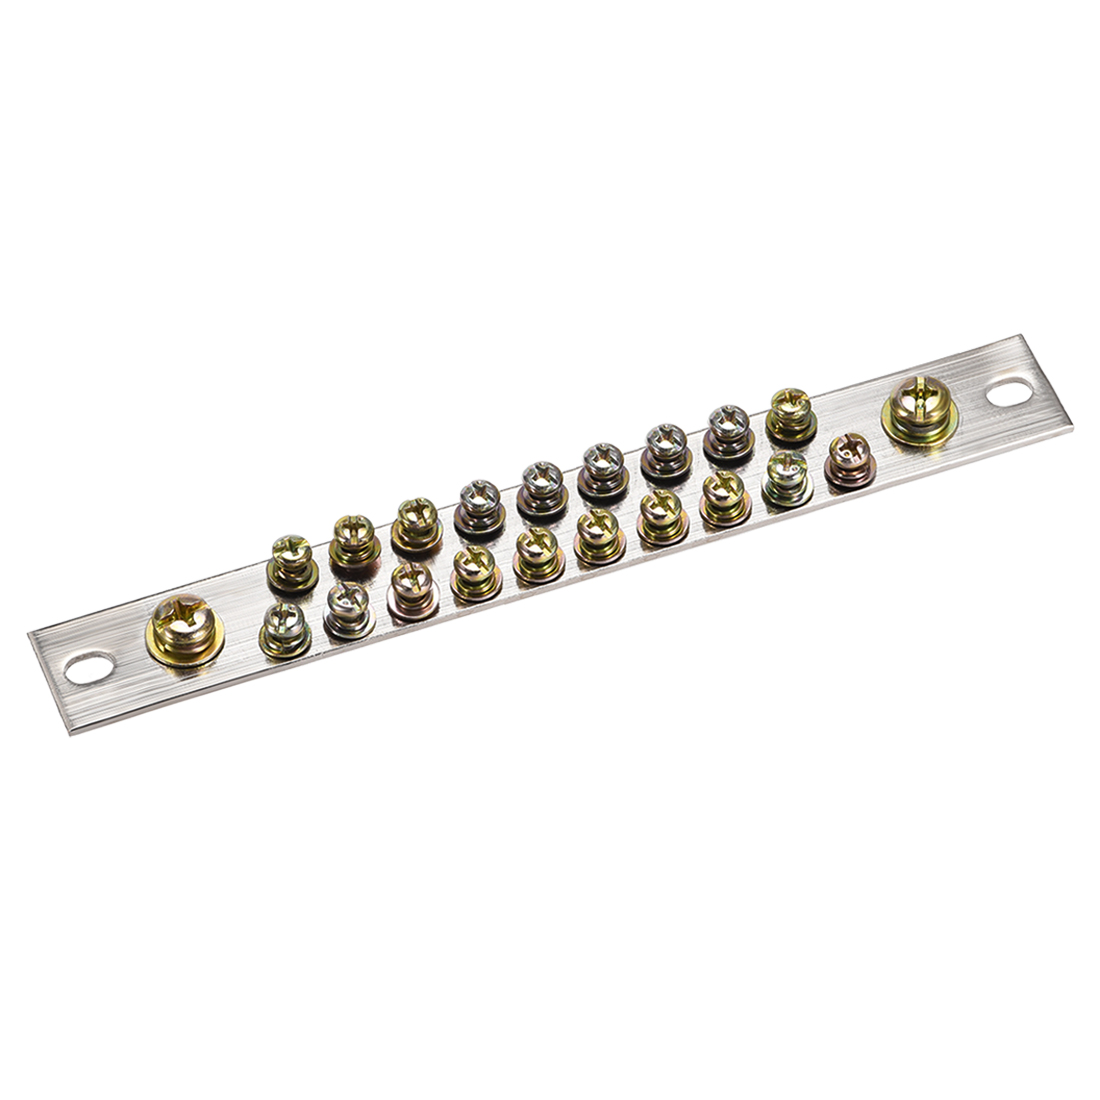 Copper Screw Terminal Block Connector Bar 100A Ground Wire 21 Positions